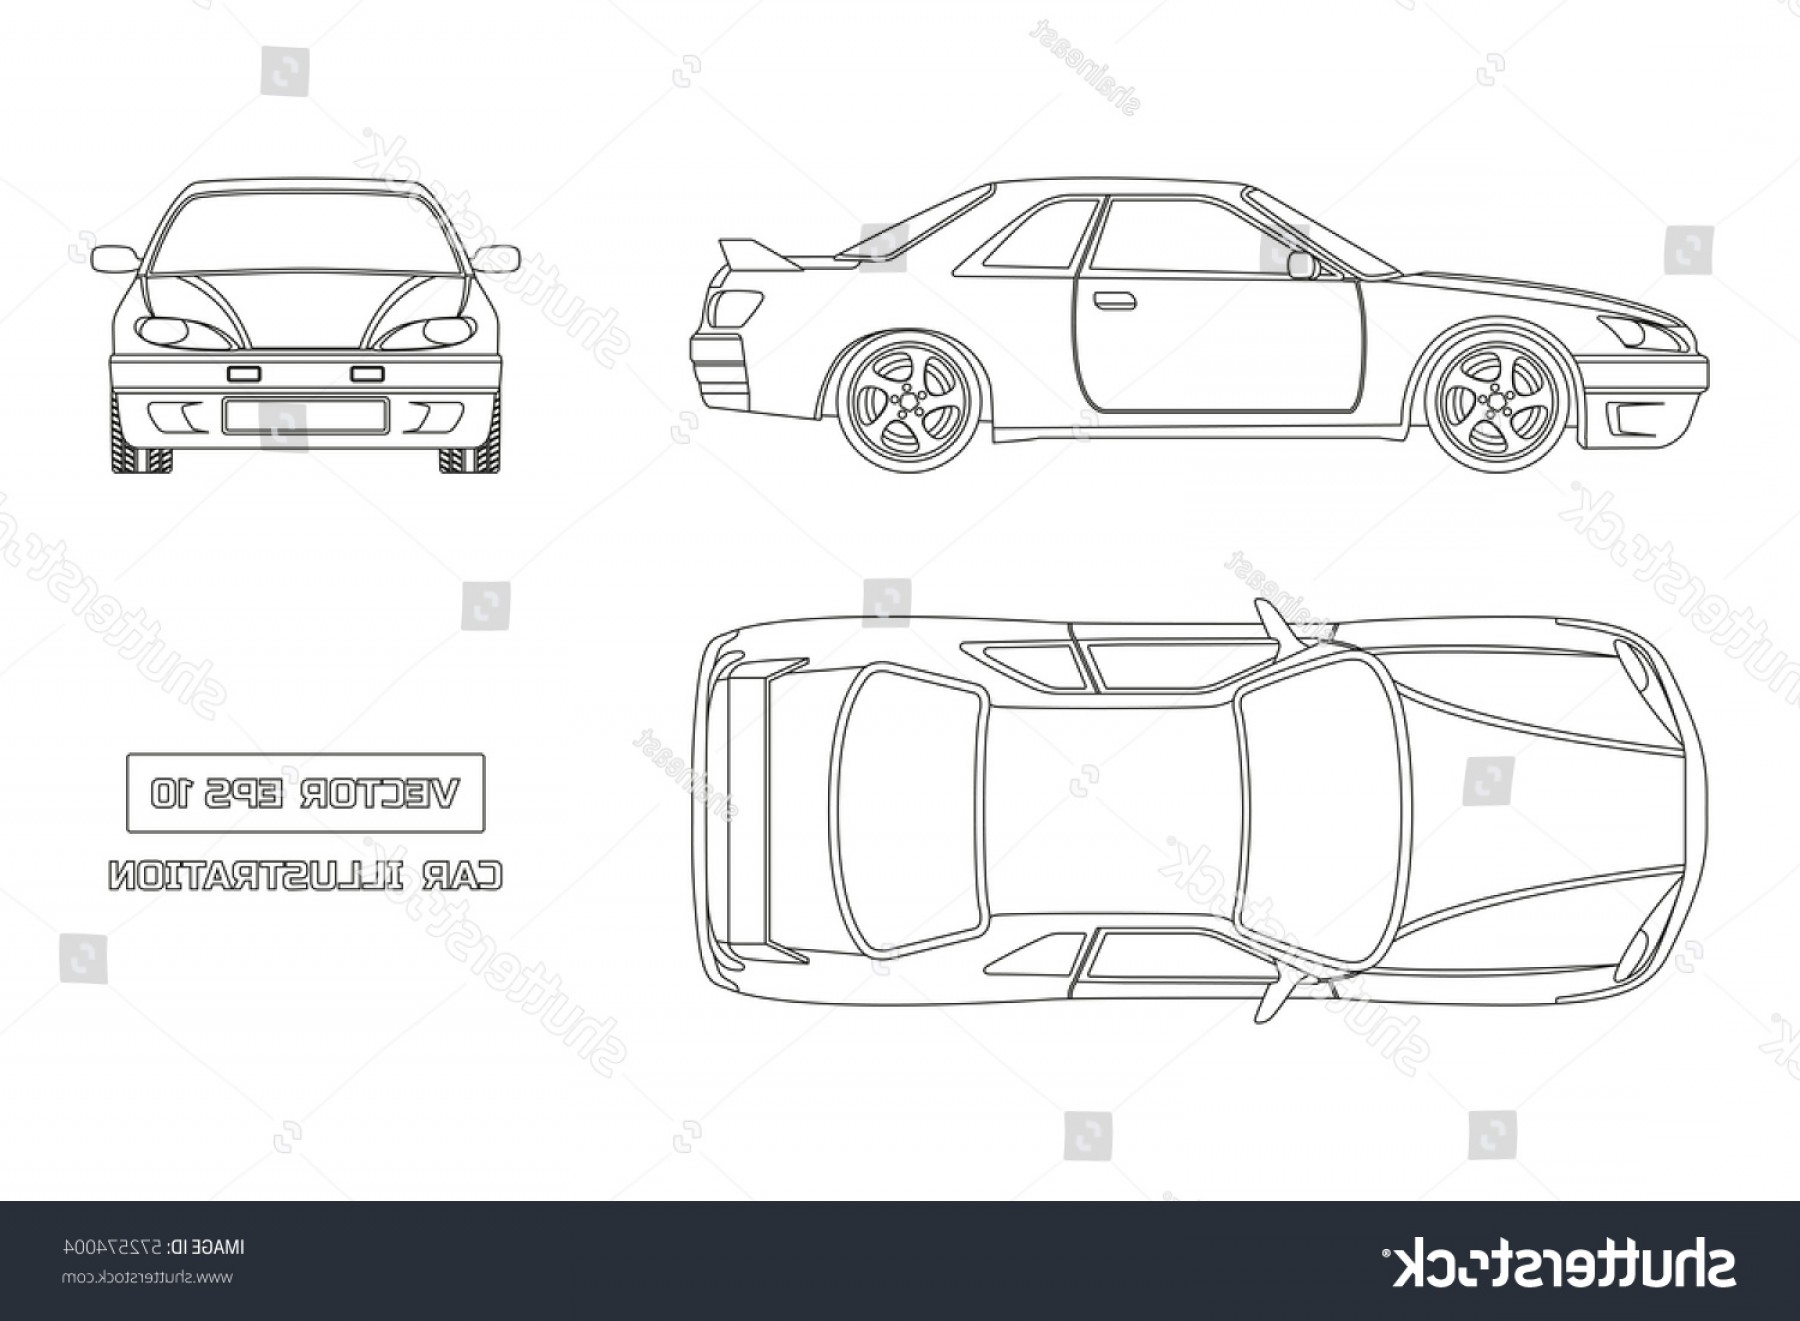 SUV Car Elevation Vector: Shutterstock Contour Drawing Of The Car On A White